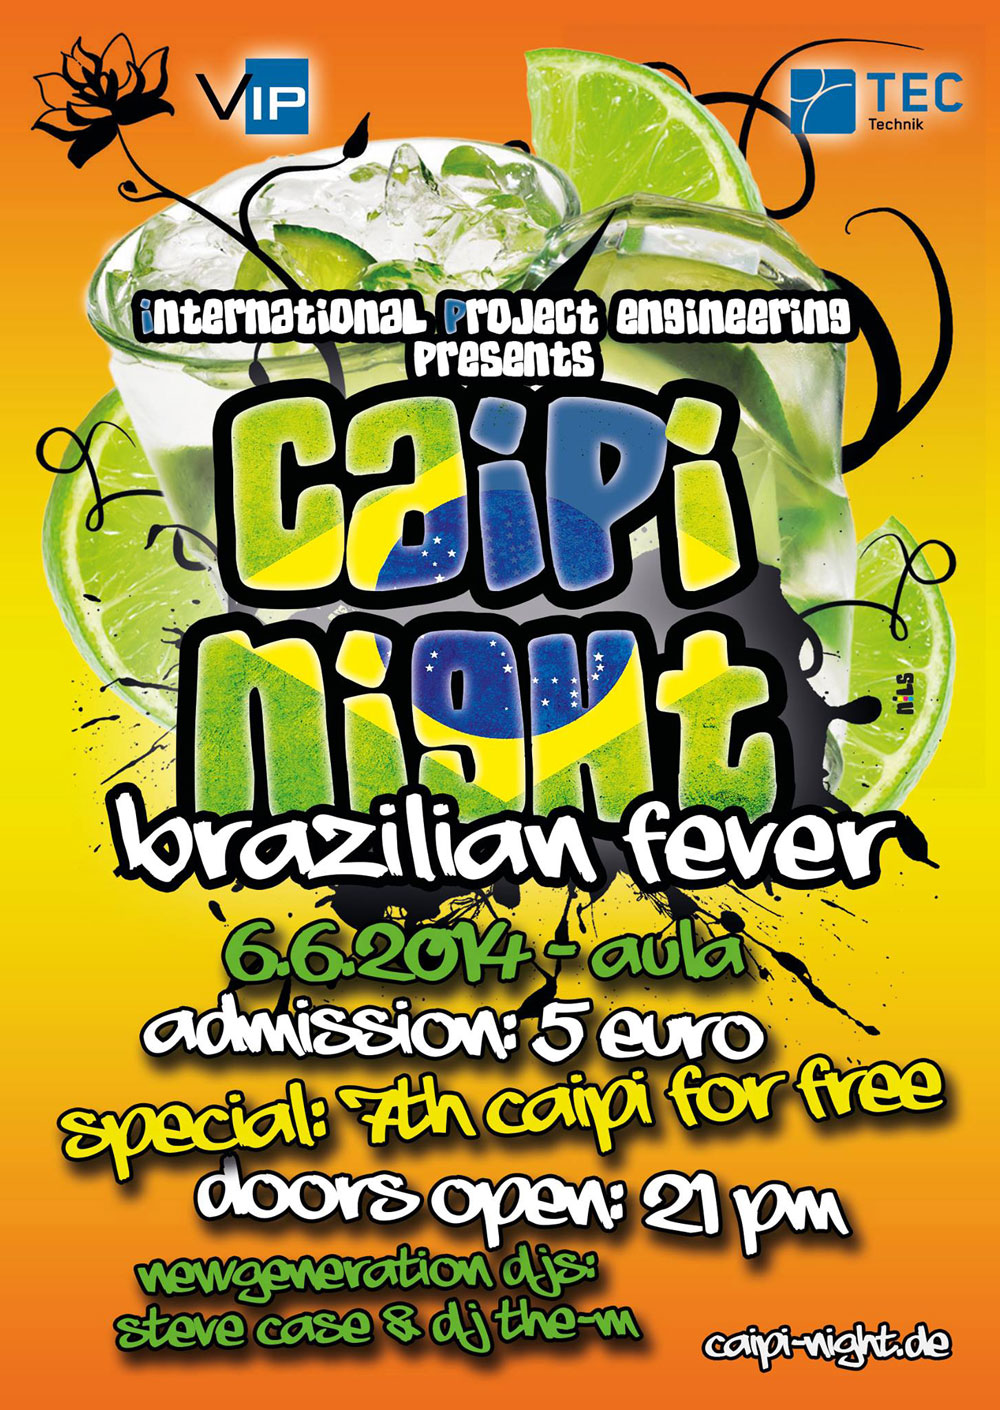 CAIPI NIGHT 7